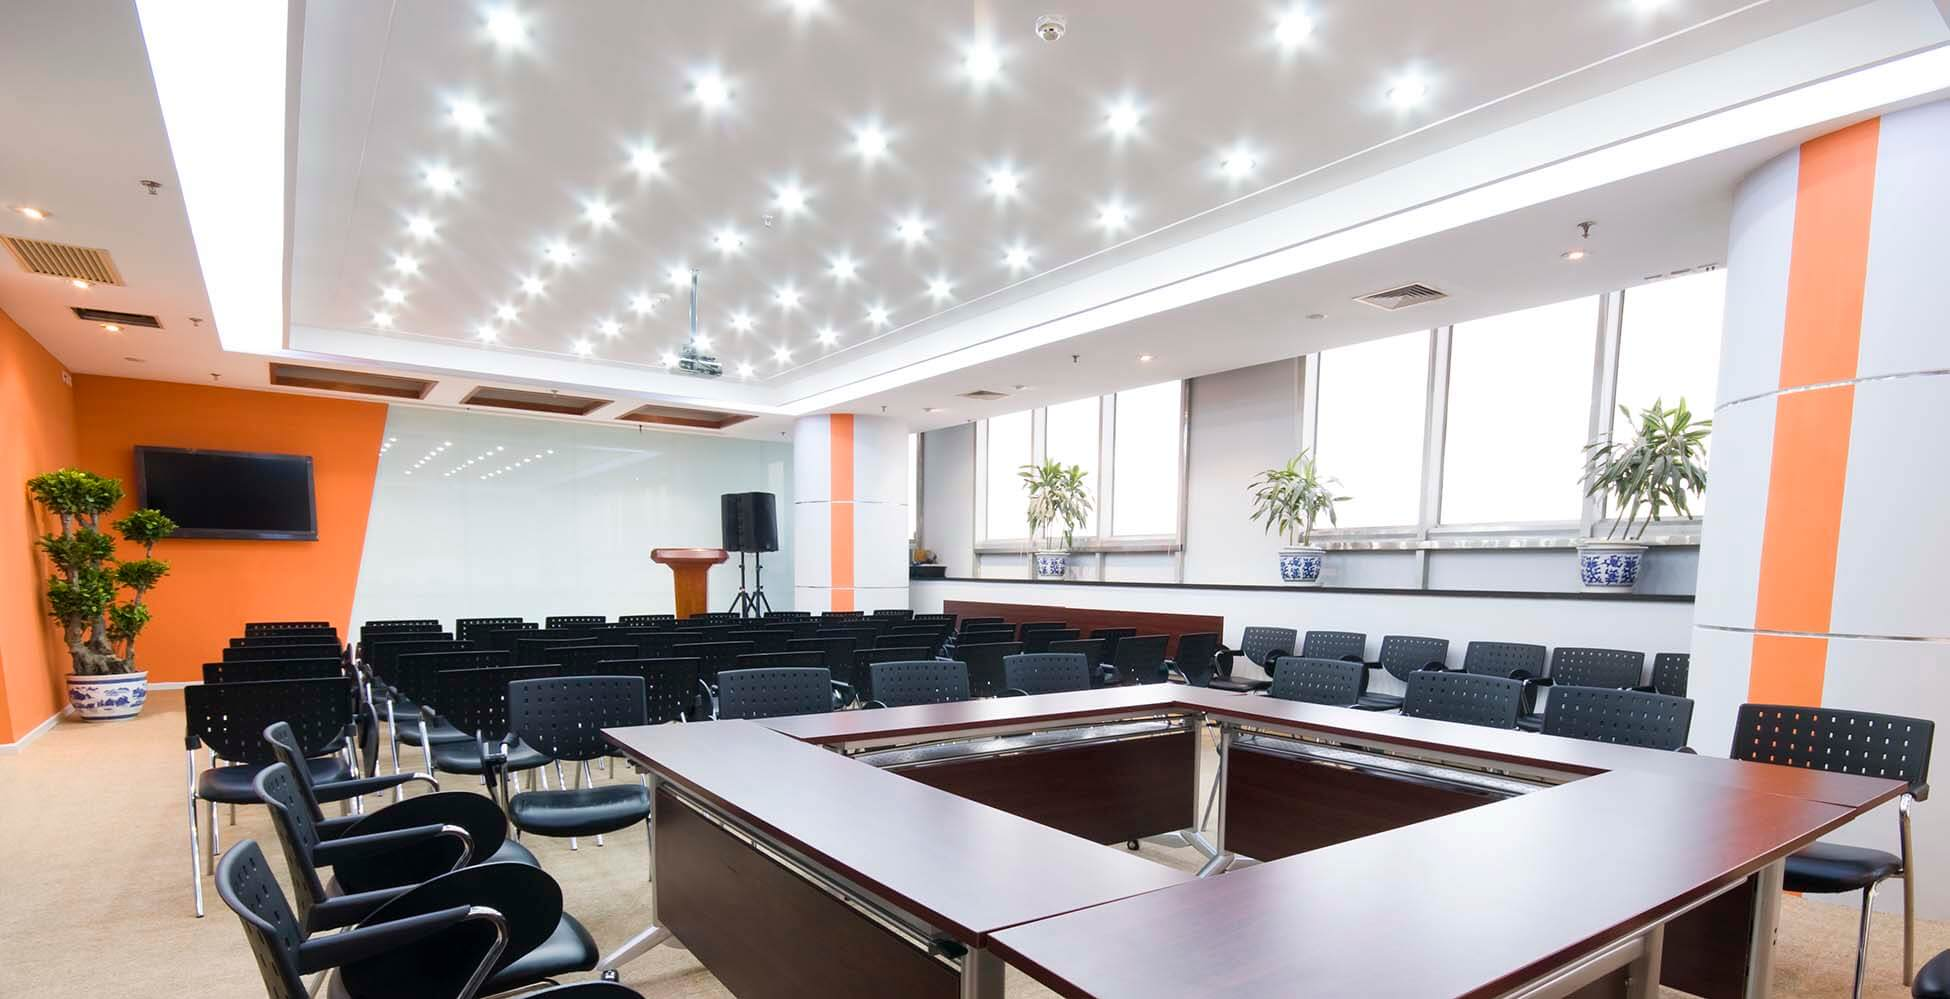 Commercial Electrical and Lighting service by McBride Electric